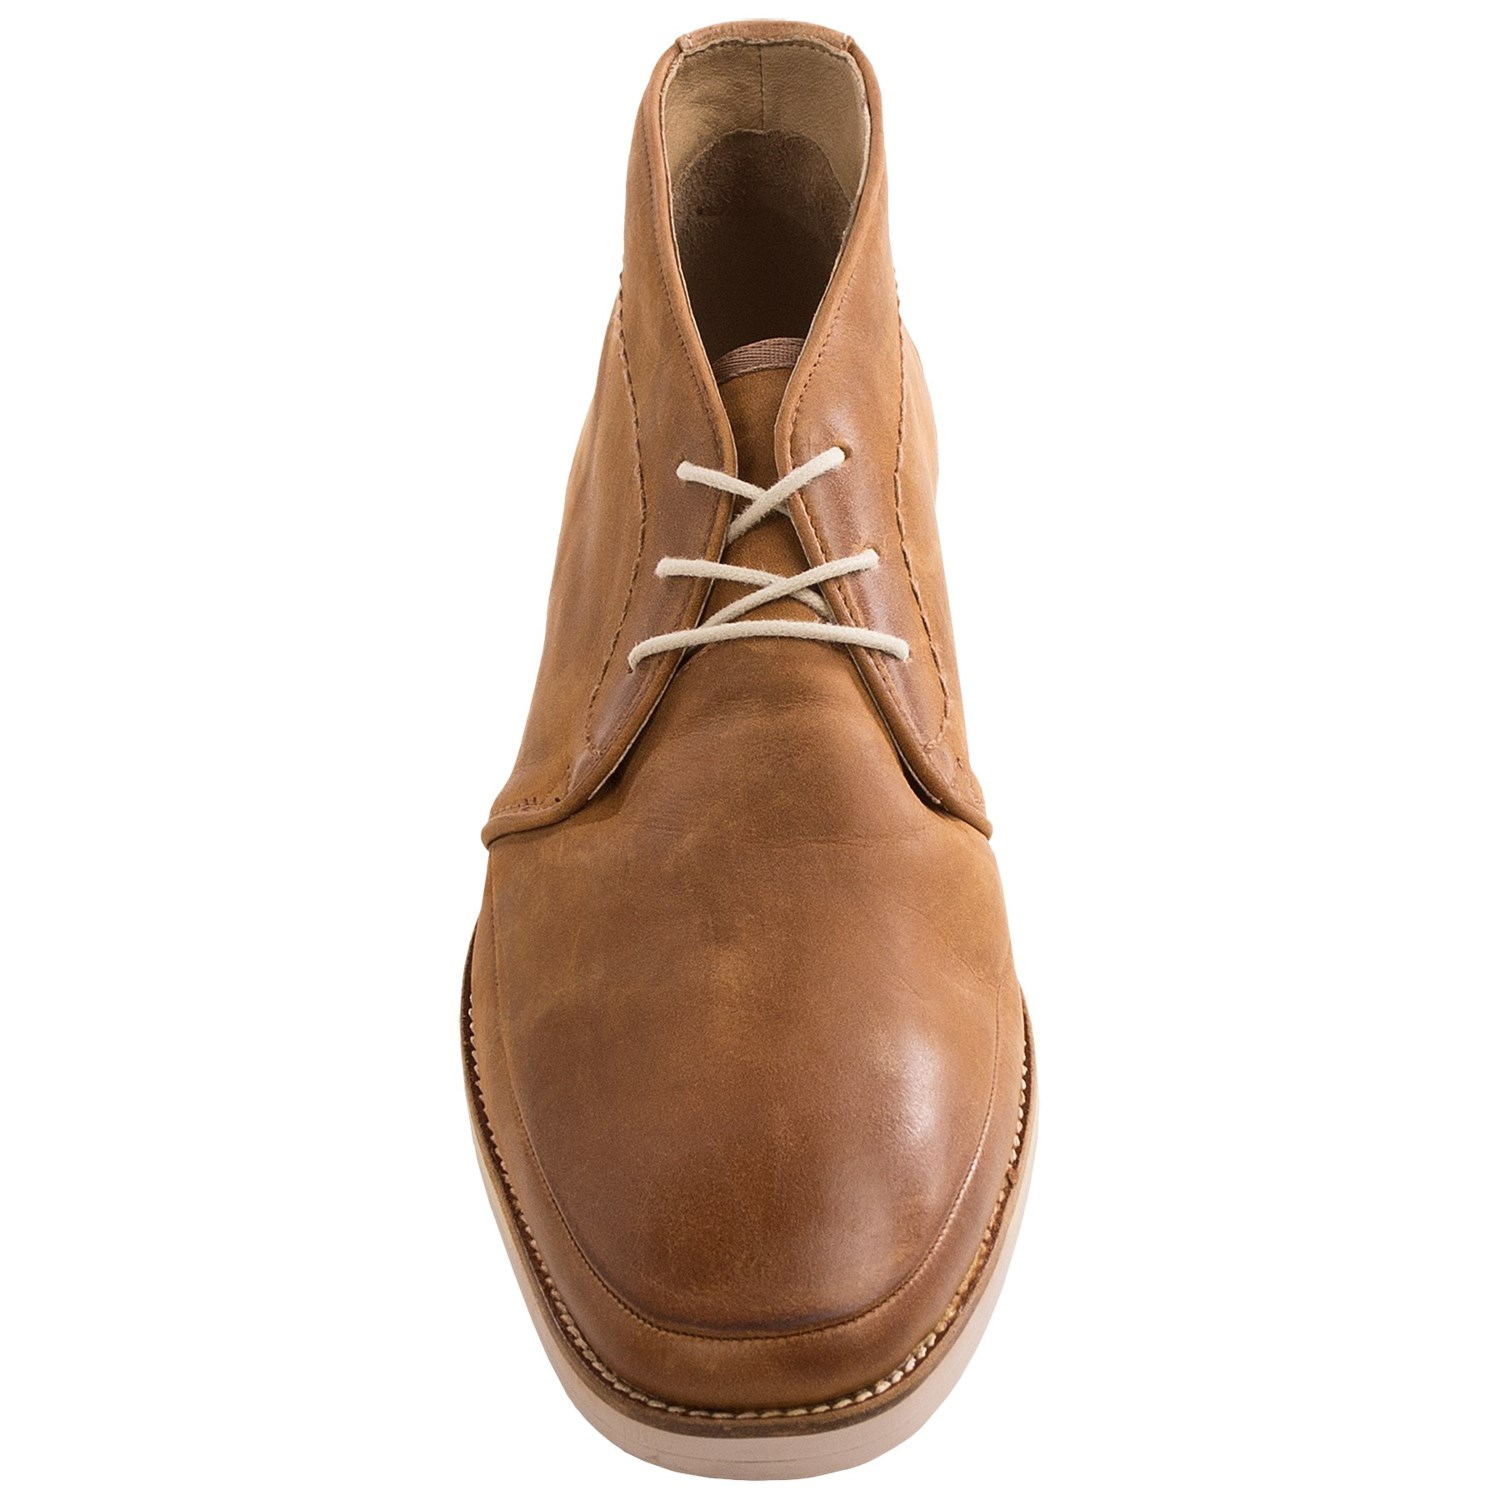 J Shoes Volunteer Chukka Boots (For Men) 8416Y - Save 56%